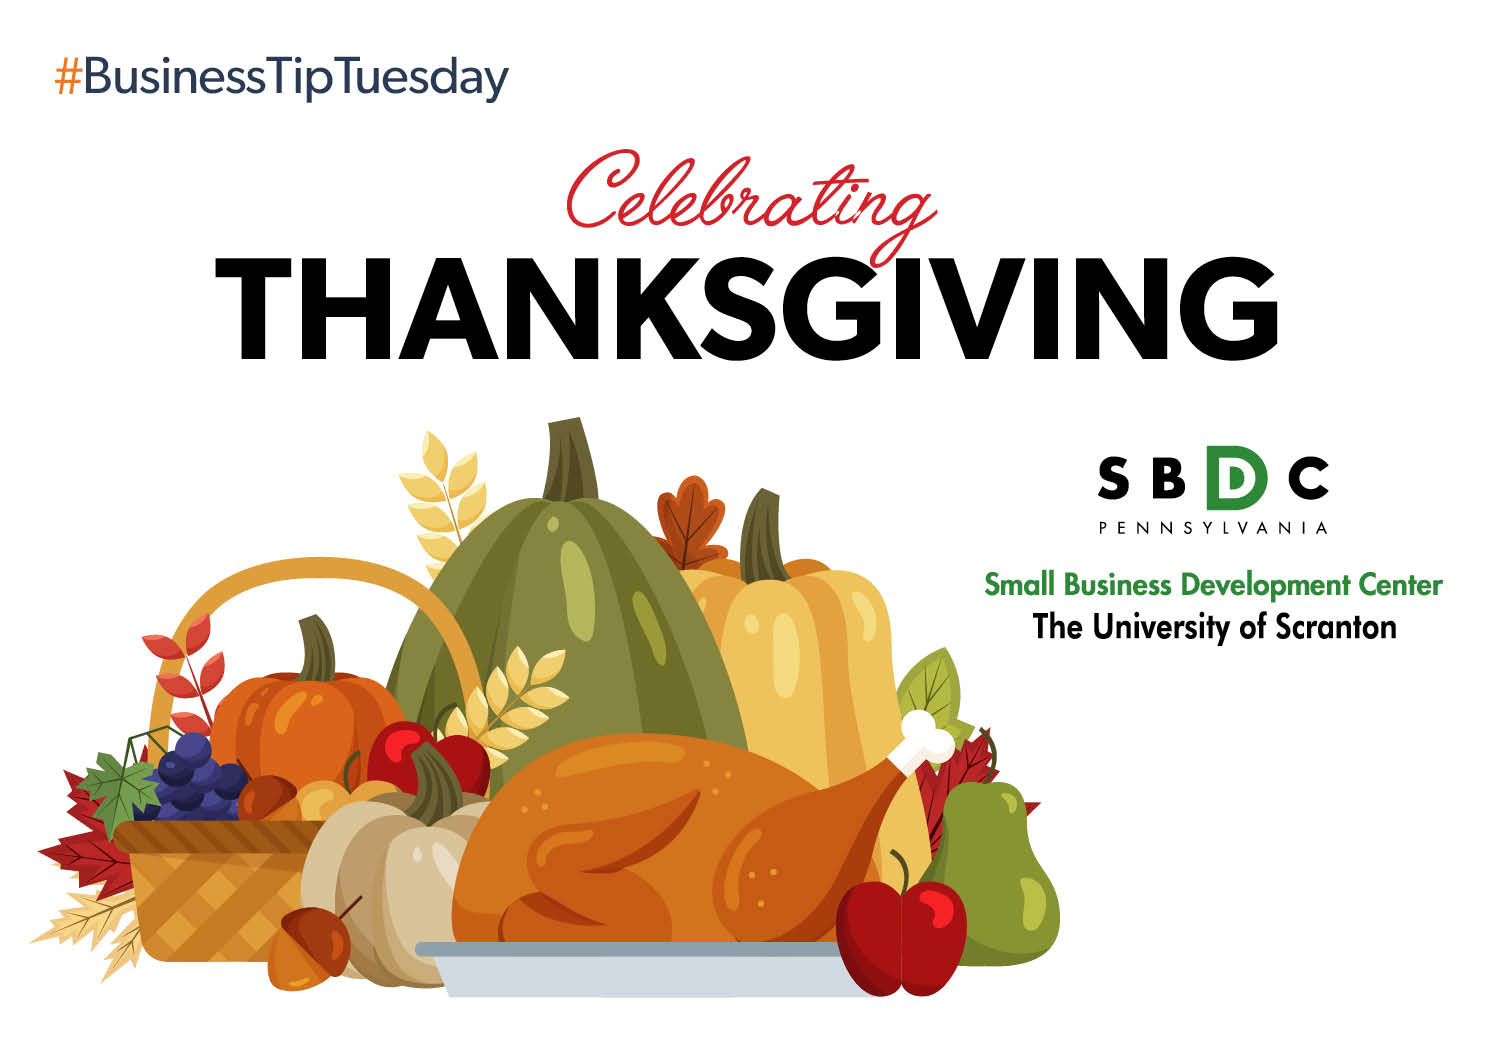 #BusinessTipTuesday— Celebrating Thanksgiving